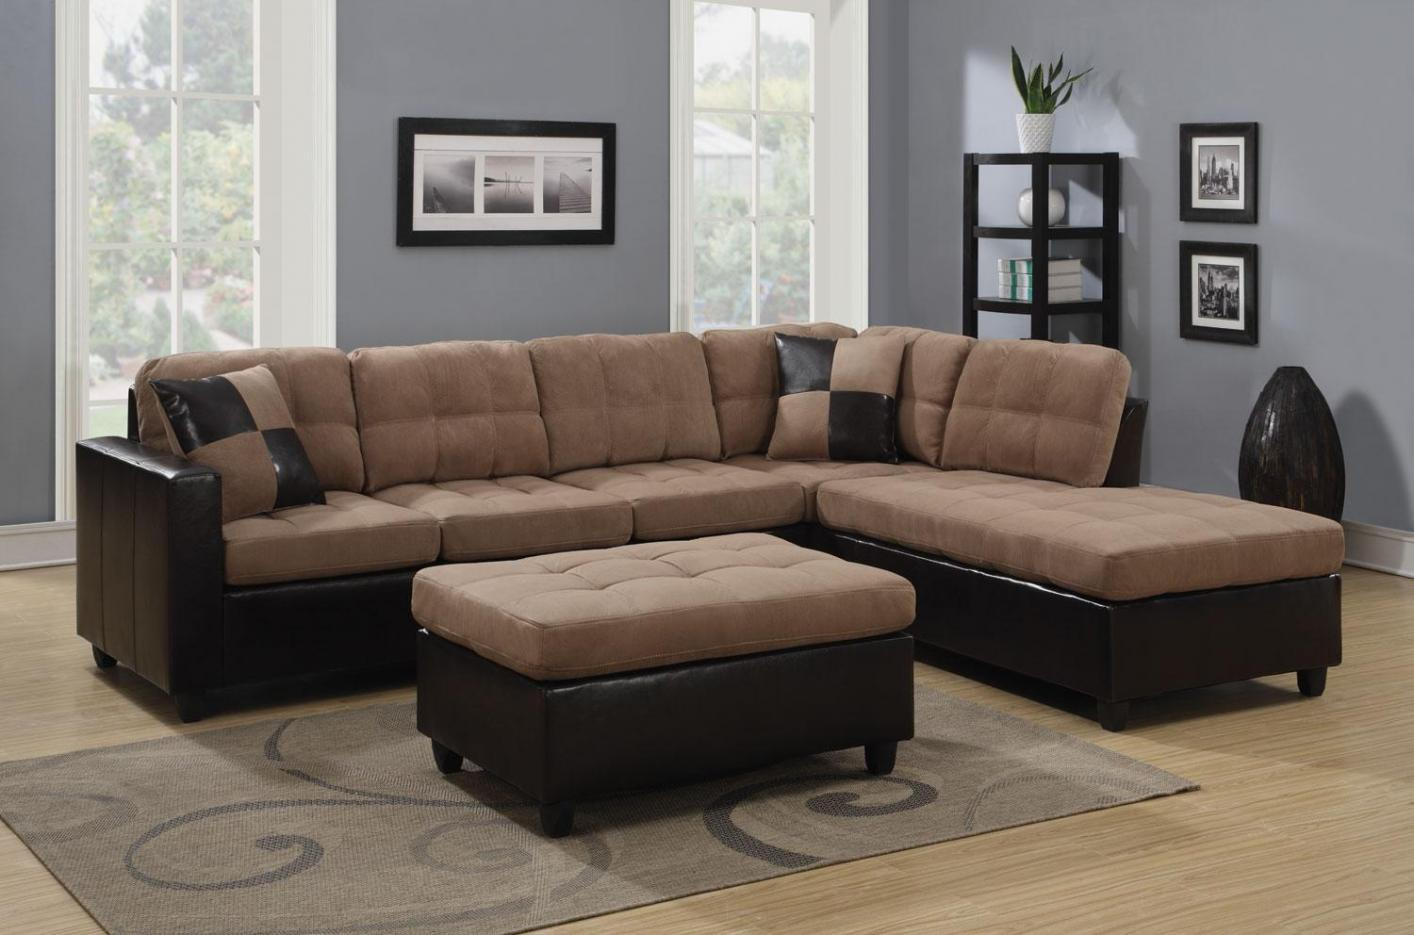 furniture of sale easy couch sectional tan aifaresidency com sofa couches on